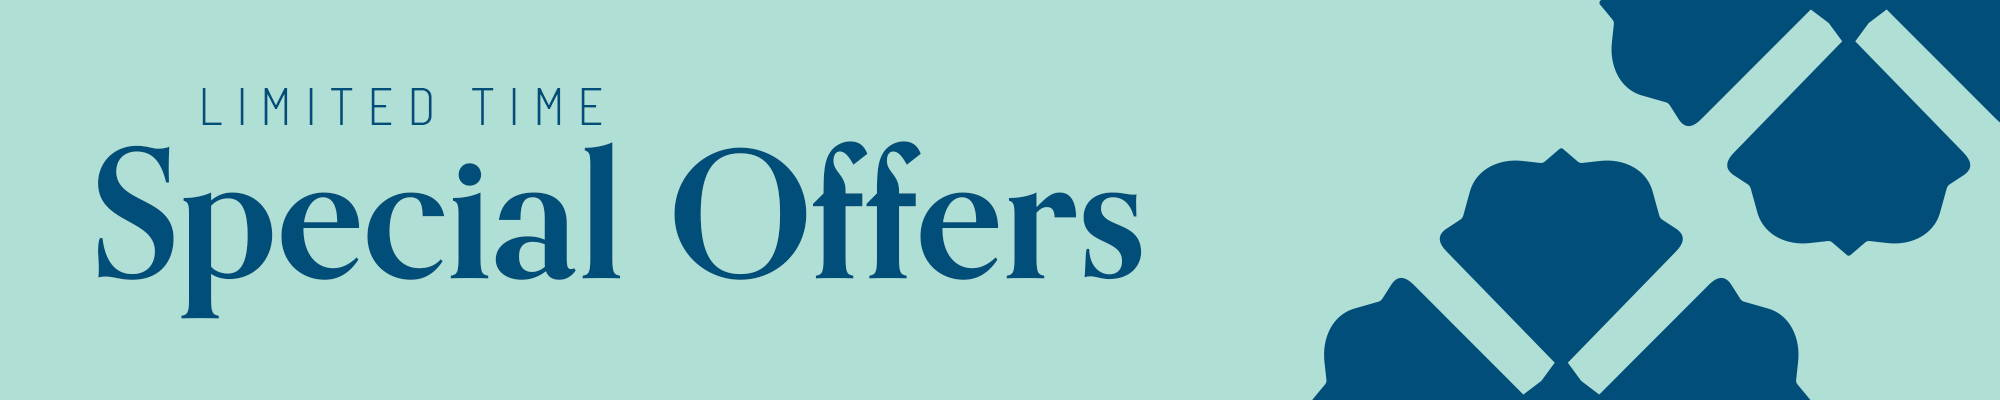 9d0688ff9 Limited Time Special Offers – Universal Companies